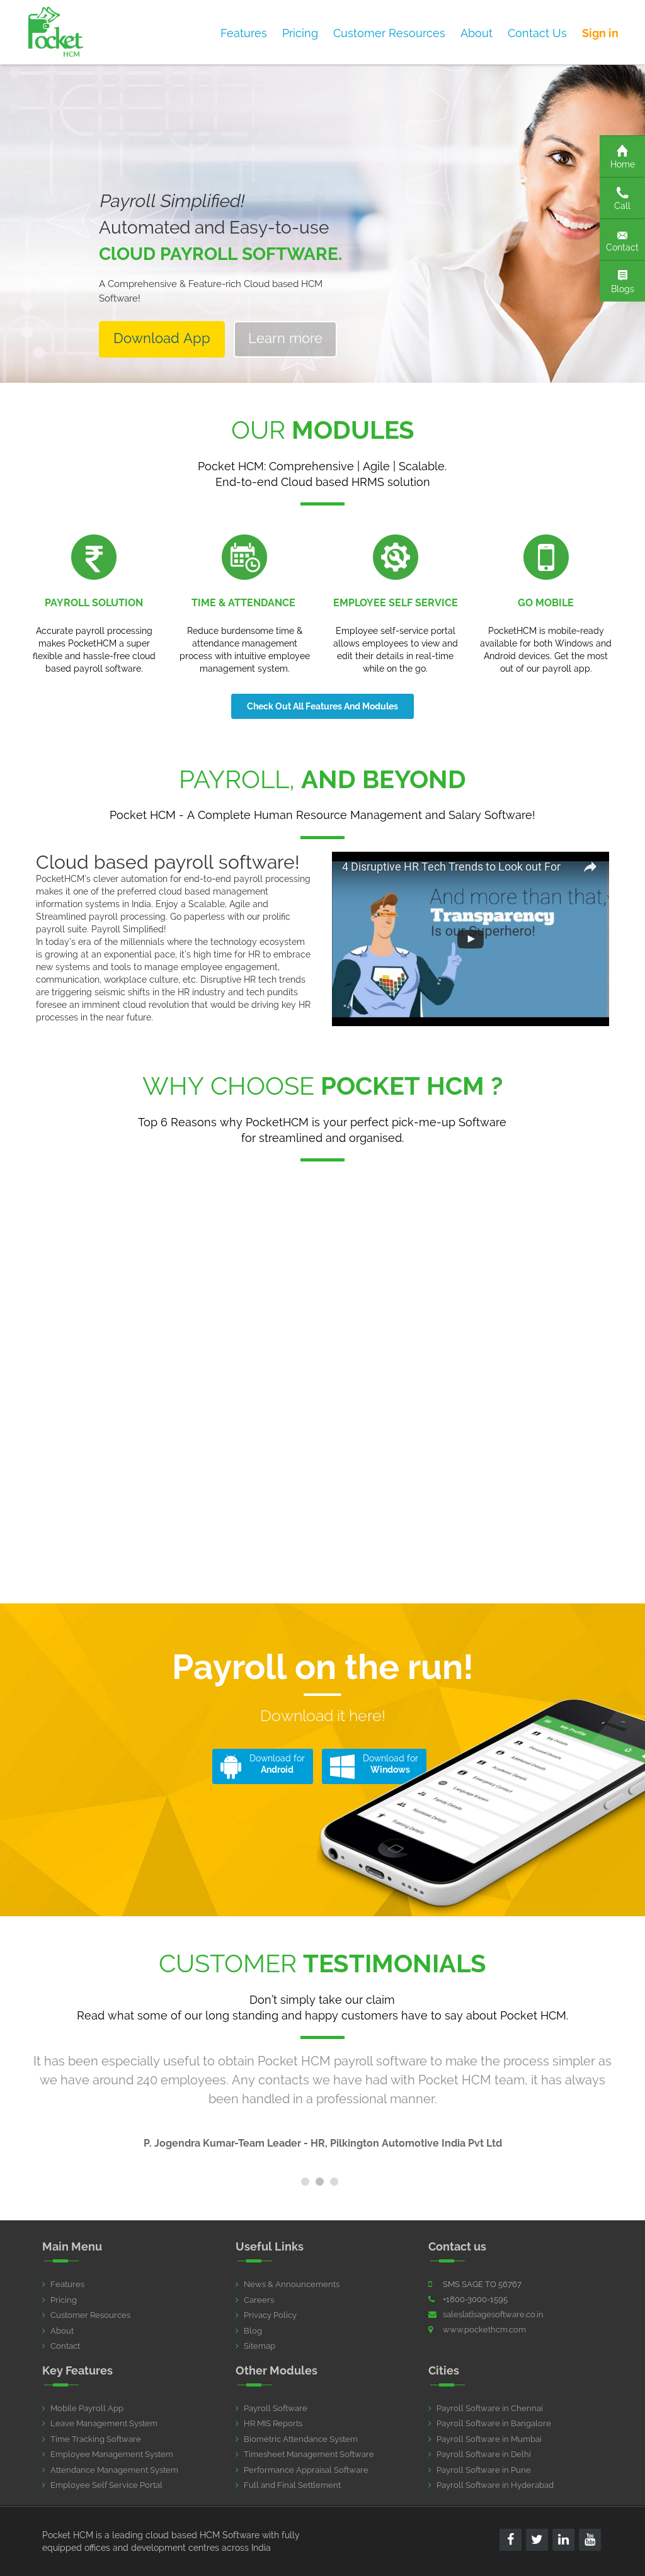 Pocket HCM Competitors, Revenue and Employees - Owler